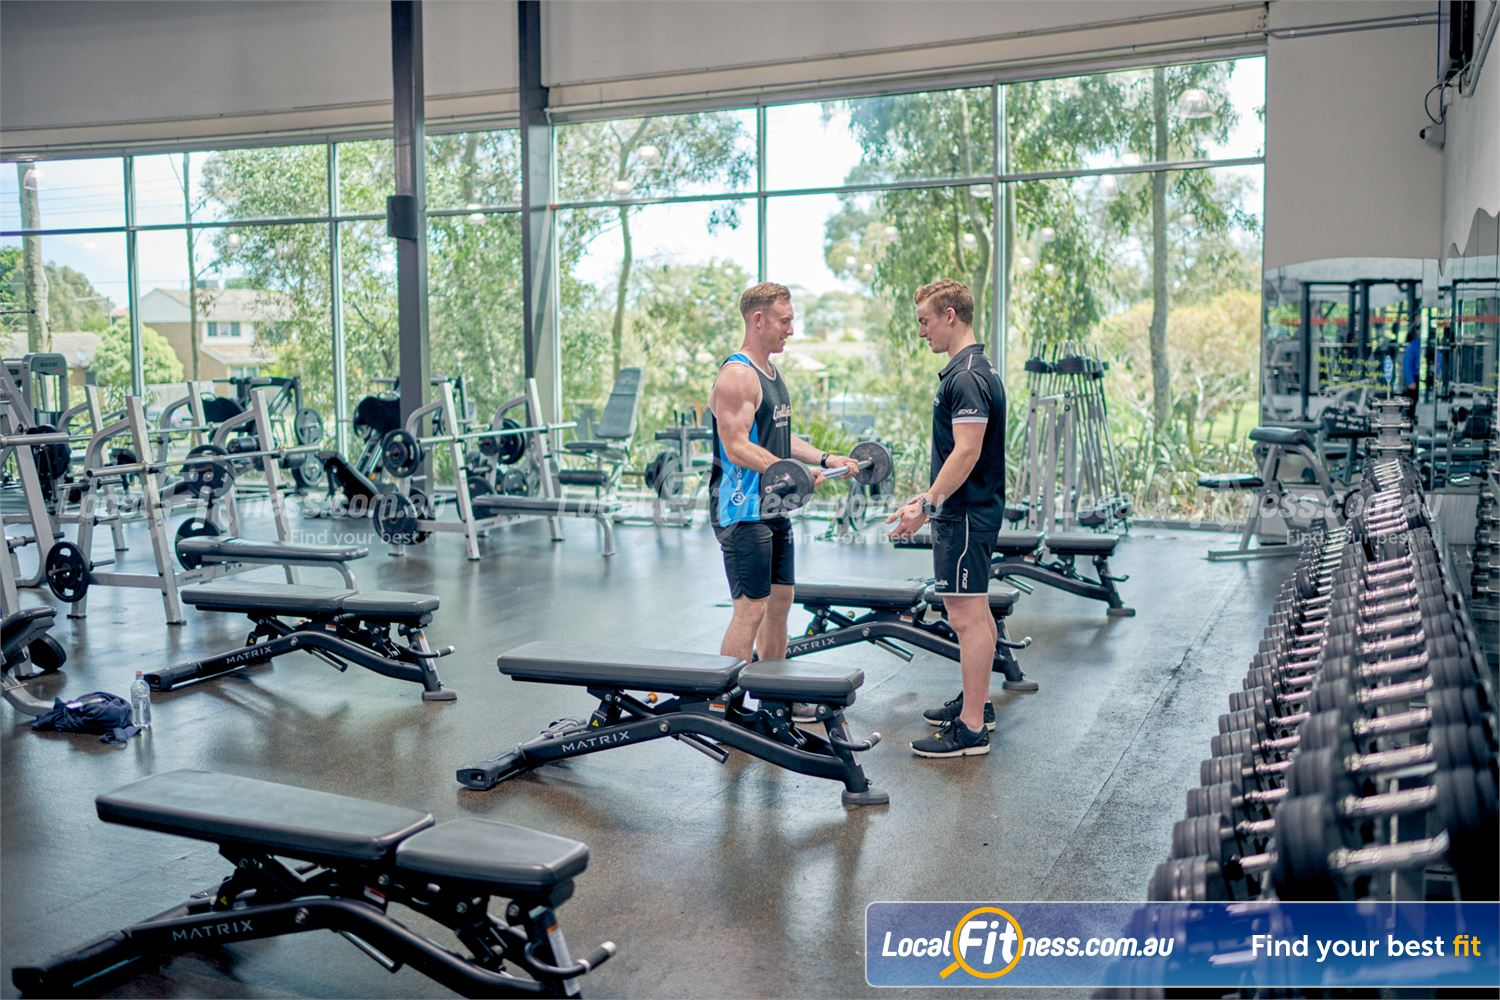 Goodlife Health Clubs Near Baxter Our Karingal gym offers a full range of dumbbells, benches, dumbbells and more.